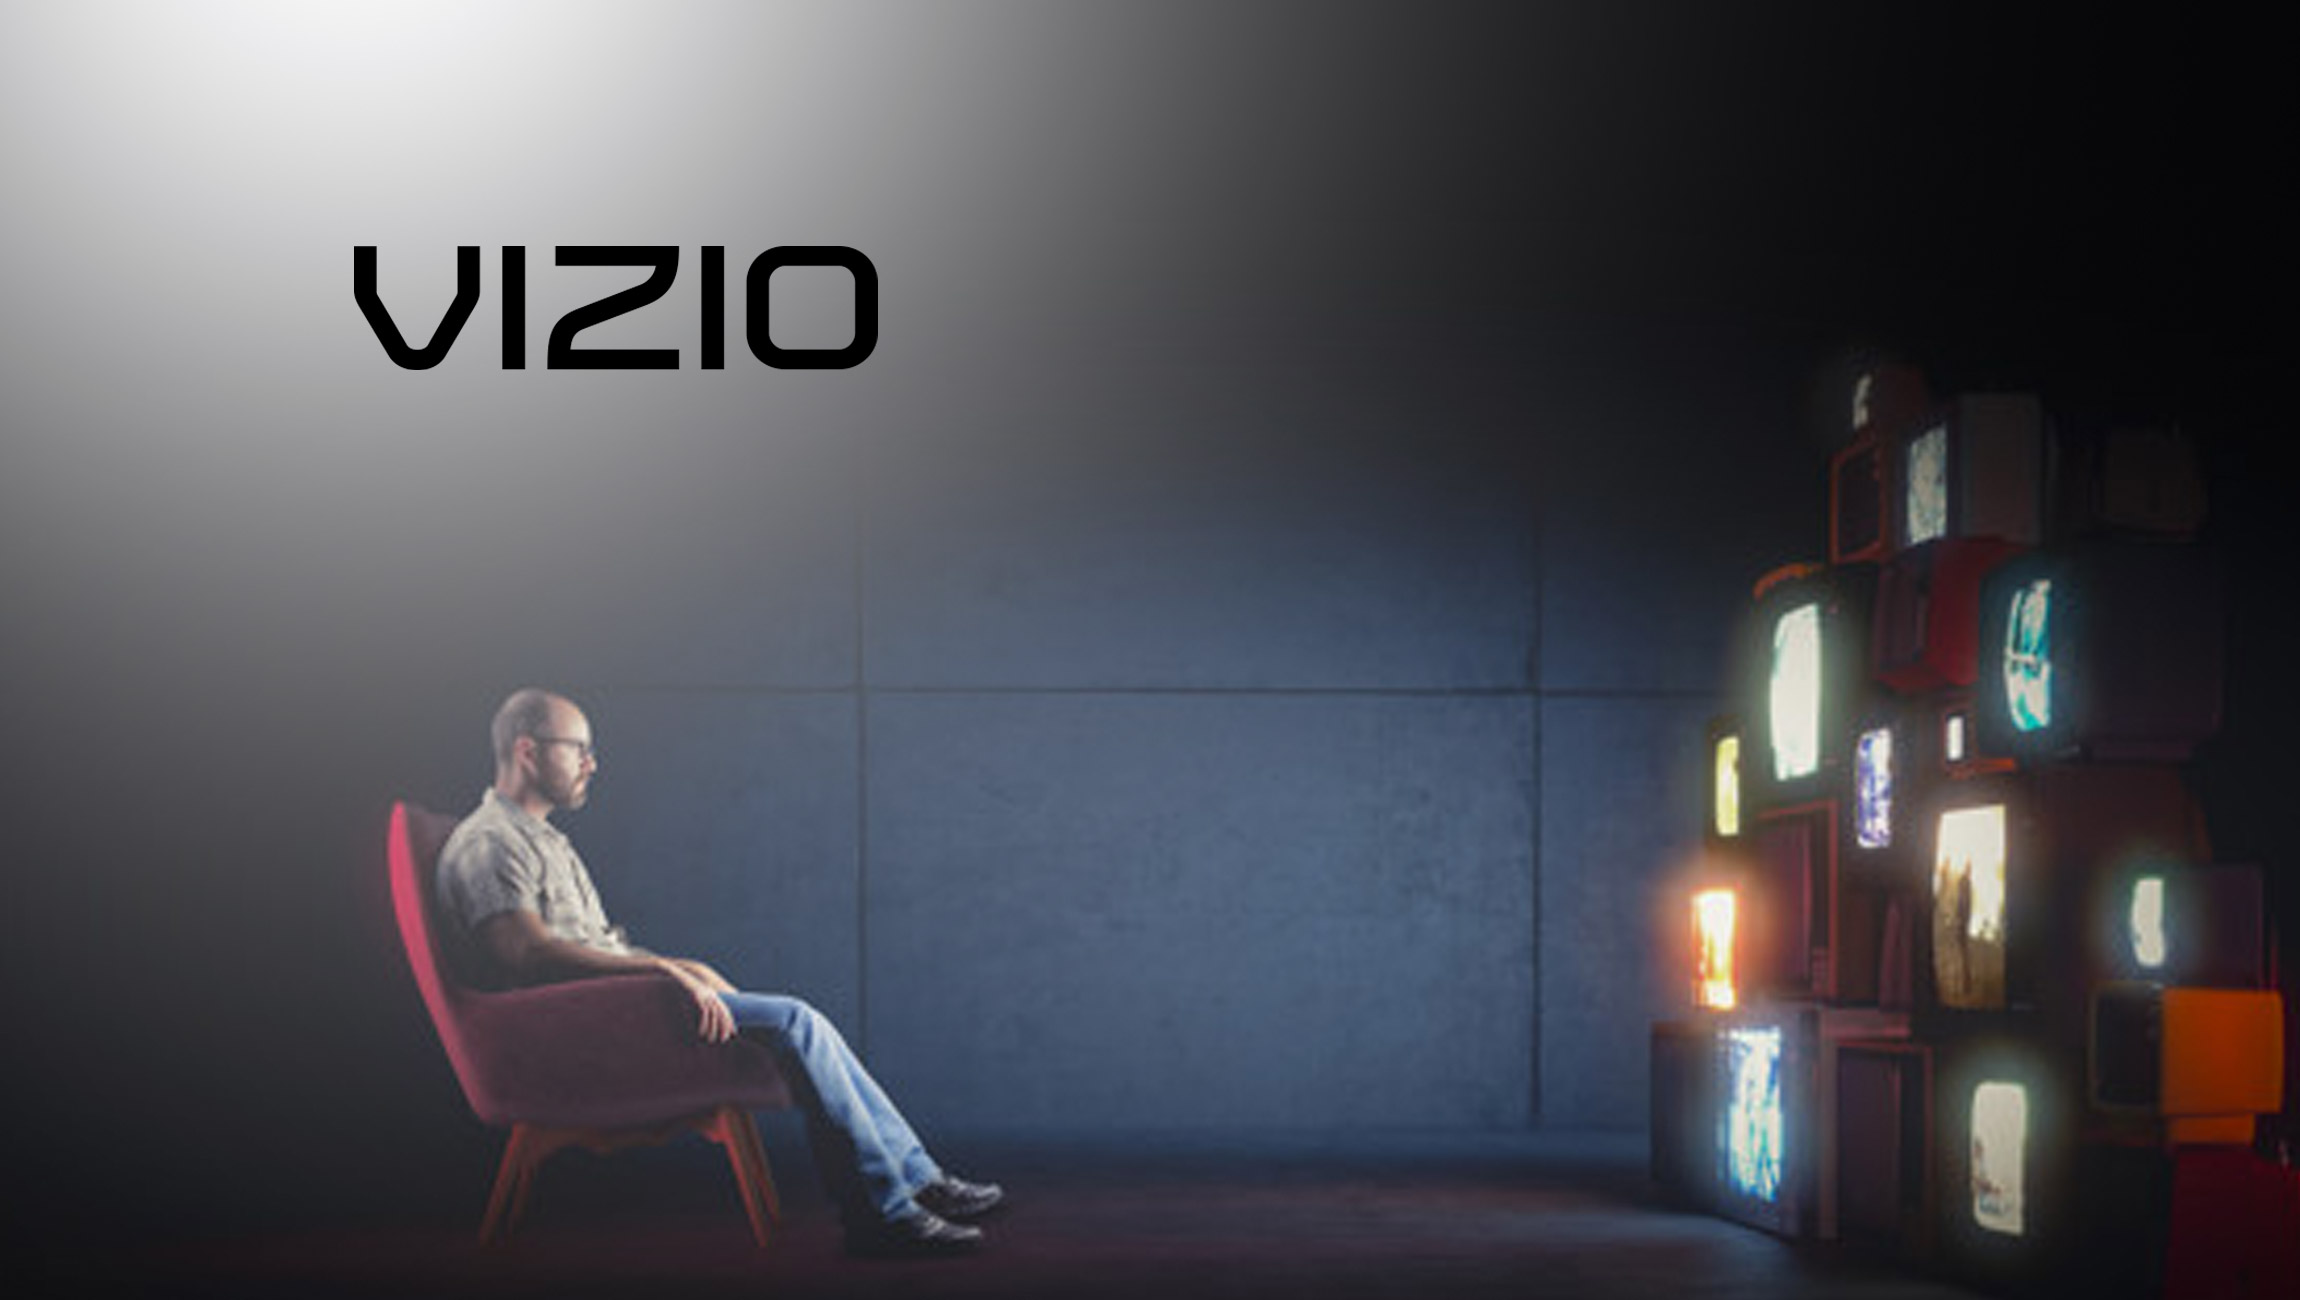 VIZIO Offers Media Buyers Fresh Look At TV Ad Innovations In Its First IAB NewFronts Presentation